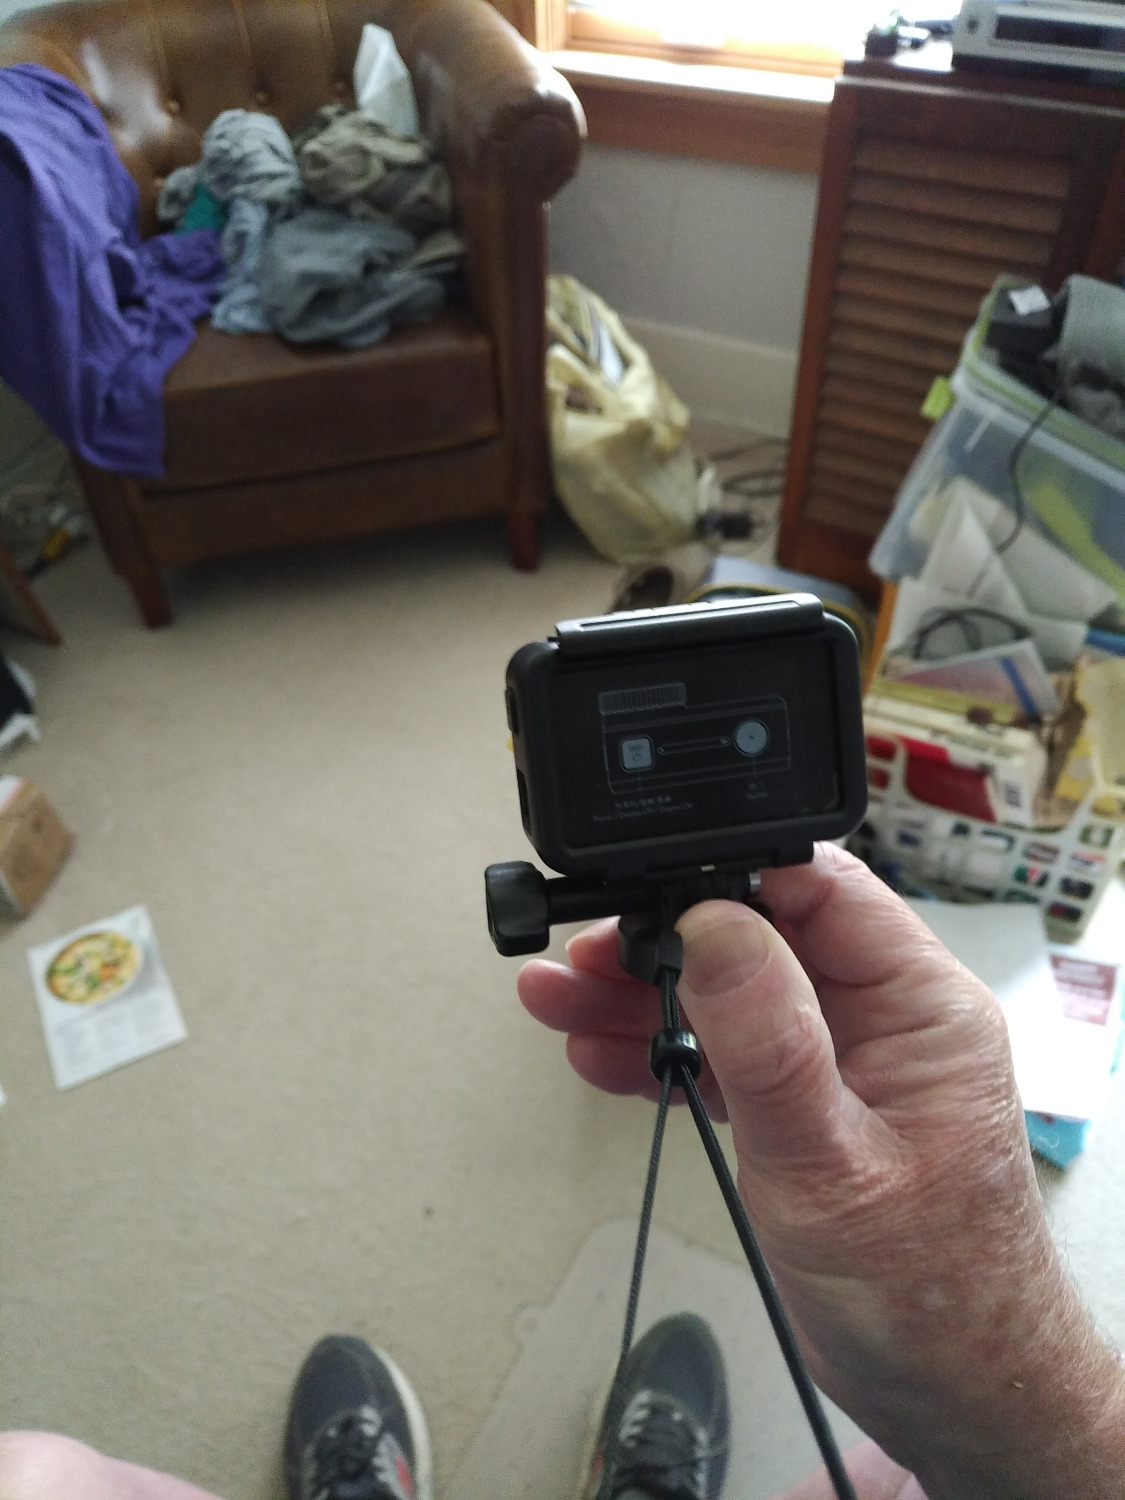 Osmo Action-Rocksteady not working??? | DJI FORUM